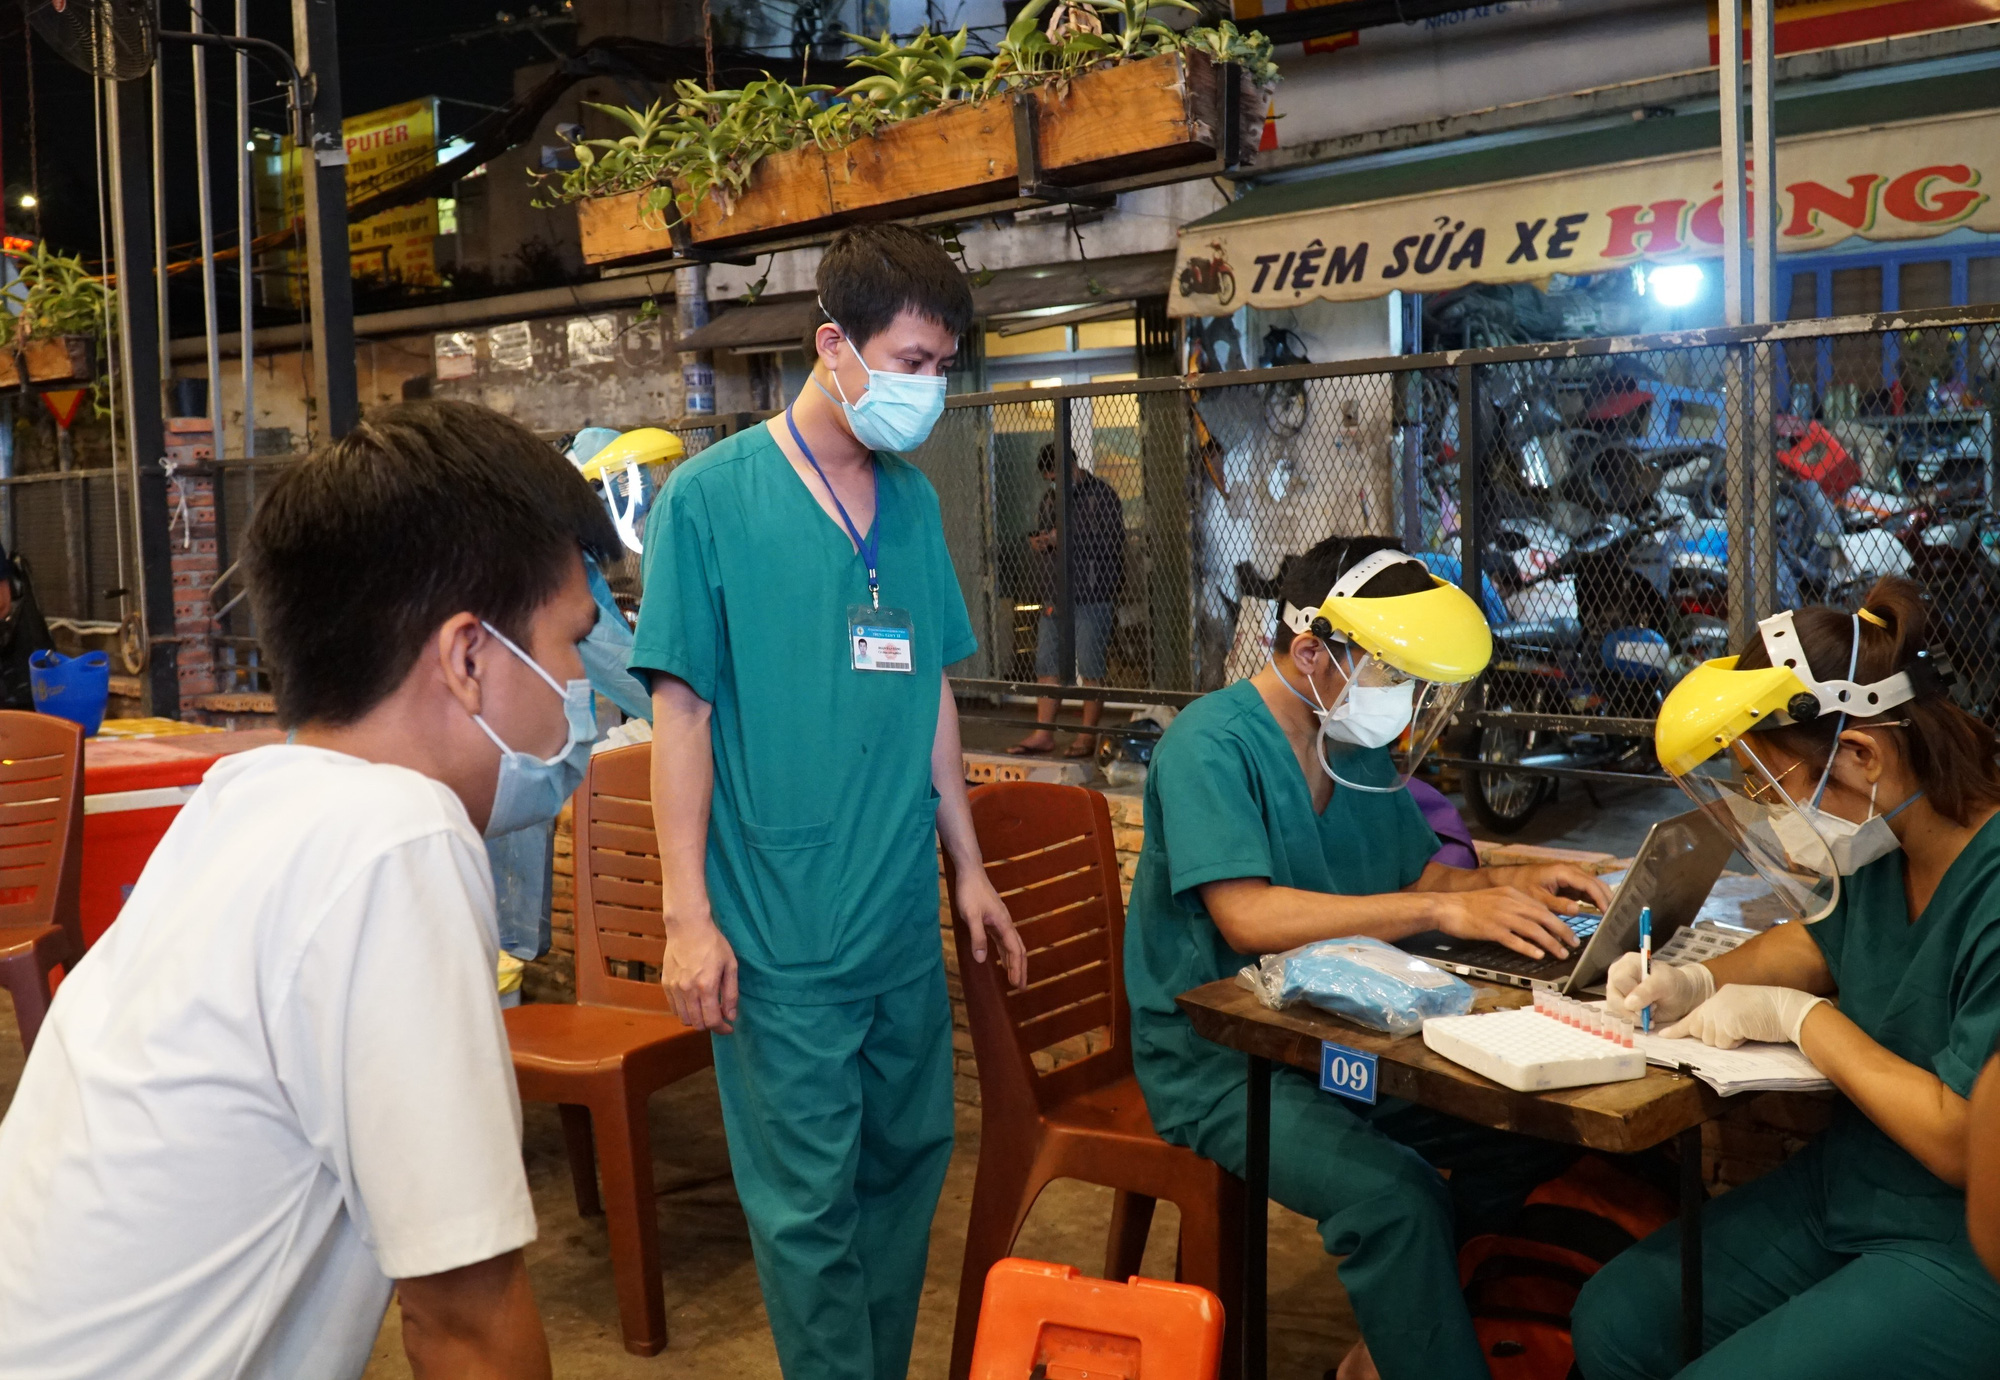 Medical workers make records of health declarations at a restaurant in Ward 11, Binh Thanh District, Ho Chi Minh City, February 22, 2021. Photo: Dan Thuan / Tuoi Tre